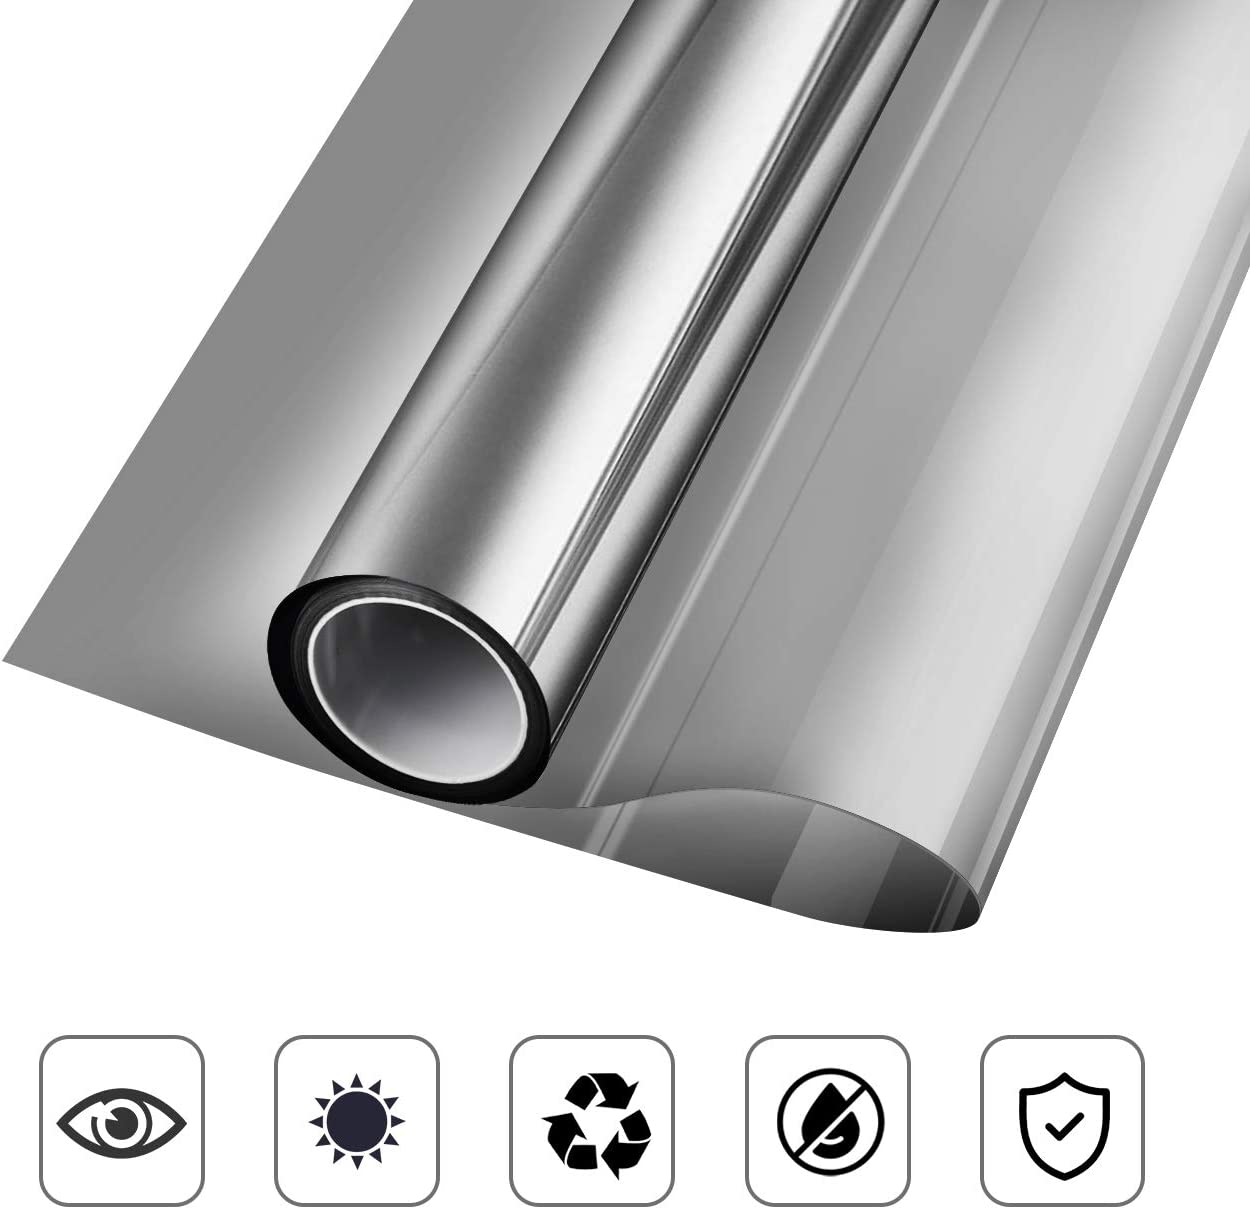 Window Glass Paper Film Tint One Way Vinyl,Window Heat Control Stickers UV Blocking Privacy Static Cling Door Coverings Non-Adhesive Stickers for Home and Office 35.4 Inch x 32.8 Feet Black Silver